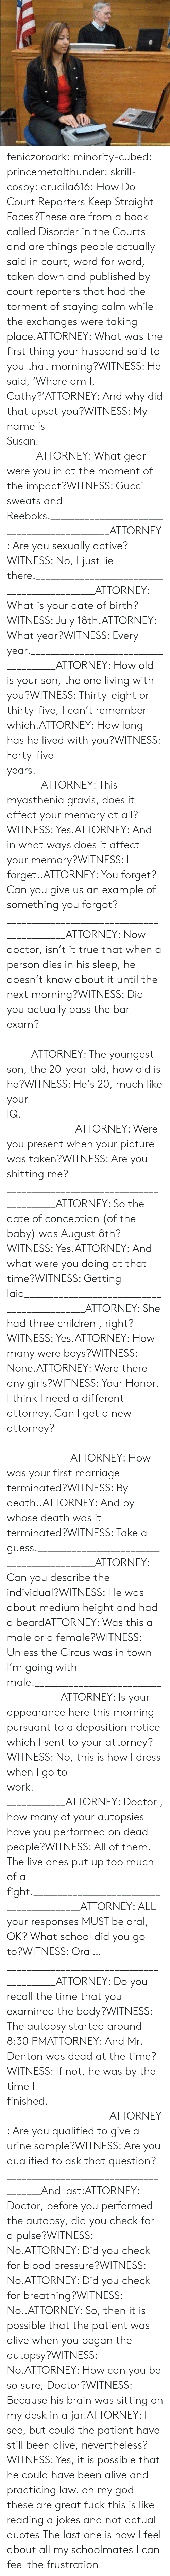 reporters: feniczoroark:  minority-cubed:  princemetalthunder:  skrill-cosby:  drucila616:  How Do Court Reporters Keep Straight Faces?These are from a book called Disorder in the Courts and are things people actually said in court, word for word, taken down and published by court reporters that had the torment of staying calm while the exchanges were taking place.ATTORNEY: What was the first thing your husband said to you that morning?WITNESS: He said, 'Where am I, Cathy?'ATTORNEY: And why did that upset you?WITNESS: My name is Susan!_______________________________ATTORNEY: What gear were you in at the moment of the impact?WITNESS: Gucci sweats and Reeboks.____________________________________________ATTORNEY: Are you sexually active?WITNESS: No, I just lie there.____________________________________________ATTORNEY: What is your date of birth?WITNESS: July 18th.ATTORNEY: What year?WITNESS: Every year._____________________________________ATTORNEY: How old is your son, the one living with you?WITNESS: Thirty-eight or thirty-five, I can't remember which.ATTORNEY: How long has he lived with you?WITNESS: Forty-five years._________________________________ATTORNEY: This myasthenia gravis, does it affect your memory at all?WITNESS: Yes.ATTORNEY: And in what ways does it affect your memory?WITNESS: I forget..ATTORNEY: You forget? Can you give us an example of something you forgot?___________________________________________ATTORNEY: Now doctor, isn't it true that when a person dies in his sleep, he doesn't know about it until the next morning?WITNESS: Did you actually pass the bar exam?____________________________________ATTORNEY: The youngest son, the 20-year-old, how old is he?WITNESS: He's 20, much like your IQ.___________________________________________ATTORNEY: Were you present when your picture was taken?WITNESS: Are you shitting me?_________________________________________ATTORNEY: So the date of conception (of the baby) was August 8th?WITNESS: Yes.ATTORNEY: And what were you doing at that time?WITNESS: Getting laid____________________________________________ATTORNEY: She had three children , right?WITNESS: Yes.ATTORNEY: How many were boys?WITNESS: None.ATTORNEY: Were there any girls?WITNESS: Your Honor, I think I need a different attorney. Can I get a new attorney?____________________________________________ATTORNEY: How was your first marriage terminated?WITNESS: By death..ATTORNEY: And by whose death was it terminated?WITNESS: Take a guess.___________________________________________ATTORNEY: Can you describe the individual?WITNESS: He was about medium height and had a beardATTORNEY: Was this a male or a female?WITNESS: Unless the Circus was in town I'm going with male._____________________________________ATTORNEY: Is your appearance here this morning pursuant to a deposition notice which I sent to your attorney?WITNESS: No, this is how I dress when I go to work.______________________________________ATTORNEY: Doctor , how many of your autopsies have you performed on dead people?WITNESS: All of them. The live ones put up too much of a fight._________________________________________ATTORNEY: ALL your responses MUST be oral, OK? What school did you go to?WITNESS: Oral…_________________________________________ATTORNEY: Do you recall the time that you examined the body?WITNESS: The autopsy started around 8:30 PMATTORNEY: And Mr. Denton was dead at the time?WITNESS: If not, he was by the time I finished.____________________________________________ATTORNEY: Are you qualified to give a urine sample?WITNESS: Are you qualified to ask that question?______________________________________And last:ATTORNEY: Doctor, before you performed the autopsy, did you check for a pulse?WITNESS: No.ATTORNEY: Did you check for blood pressure?WITNESS: No.ATTORNEY: Did you check for breathing?WITNESS: No..ATTORNEY: So, then it is possible that the patient was alive when you began the autopsy?WITNESS: No.ATTORNEY: How can you be so sure, Doctor?WITNESS: Because his brain was sitting on my desk in a jar.ATTORNEY: I see, but could the patient have still been alive, nevertheless?WITNESS: Yes, it is possible that he could have been alive and practicing law.  oh my god these are great  fuck this is like reading a jokes and not actual quotes   The last one is how I feel about all my schoolmates  I can feel the frustration